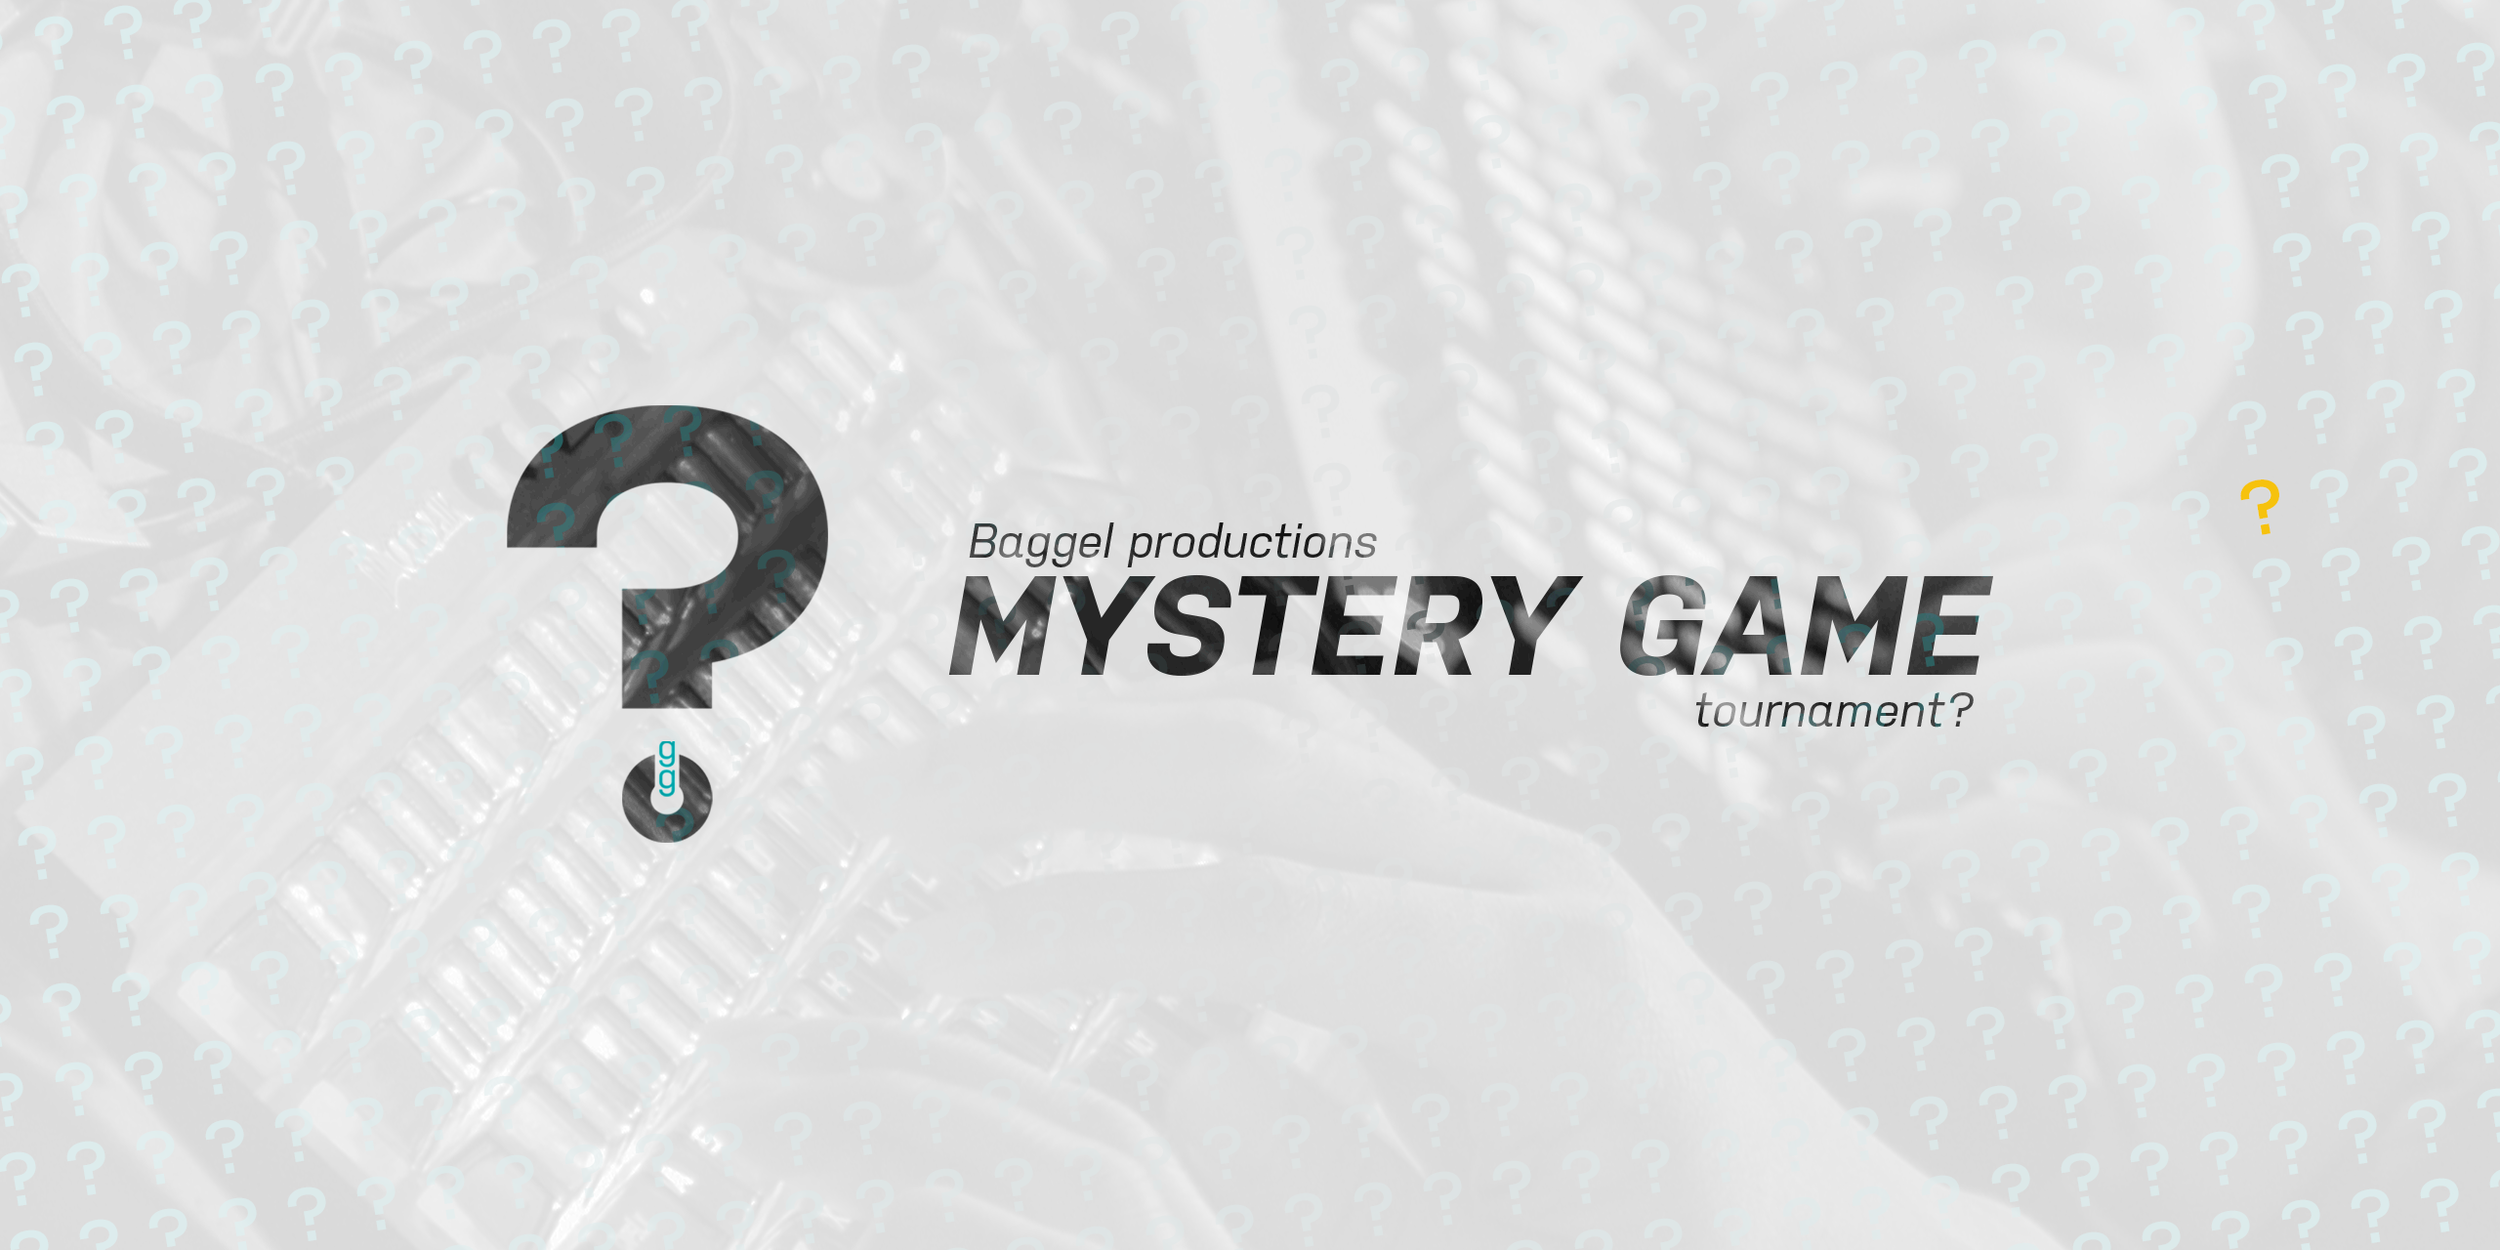 mystery_game_tournament_smash.gg_banner (1).png